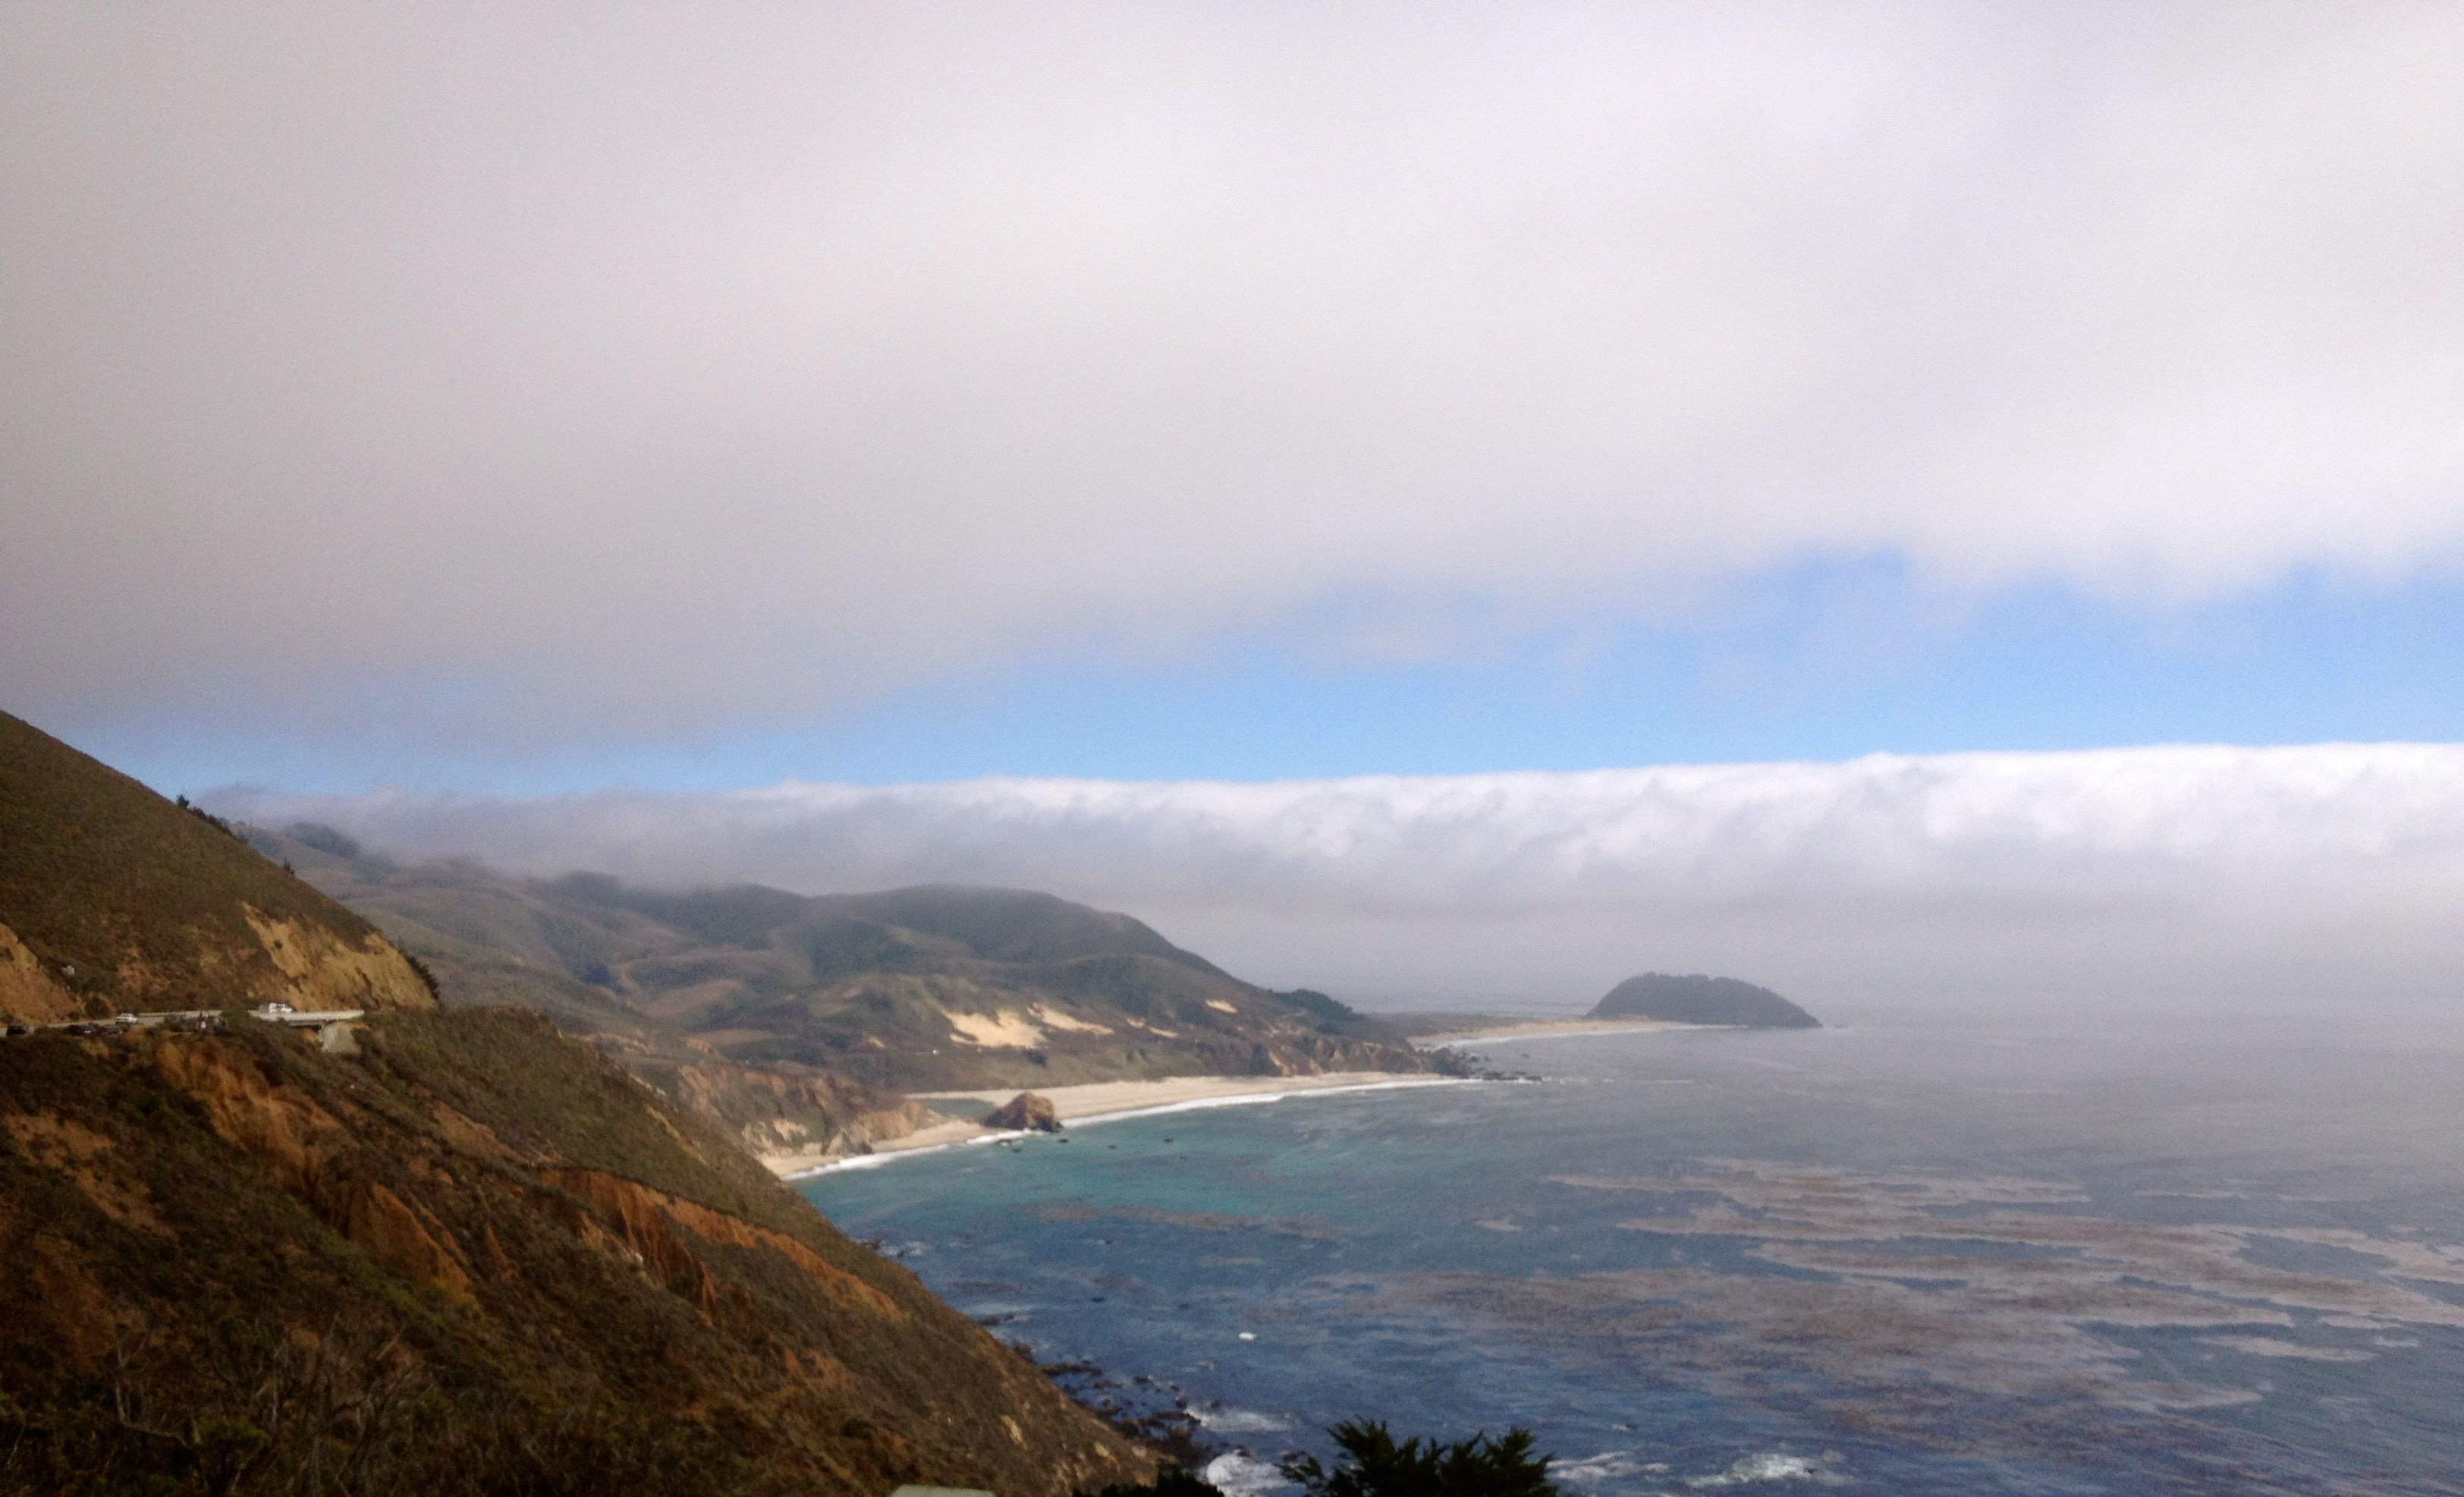 California Coast - The 1